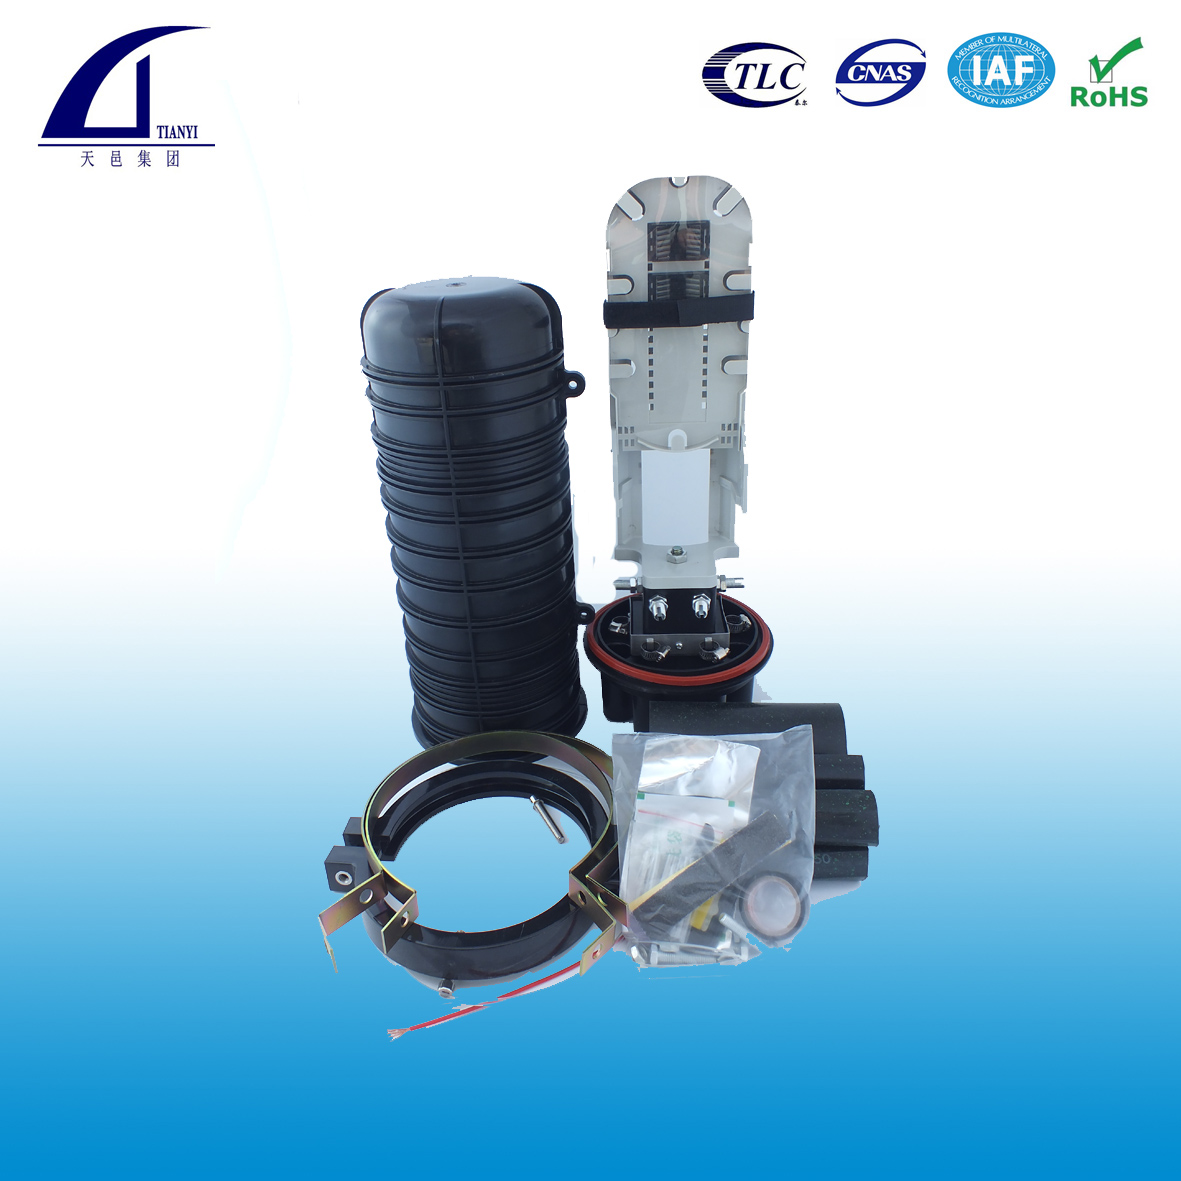 Dome type fiber optic splice closure FOSC